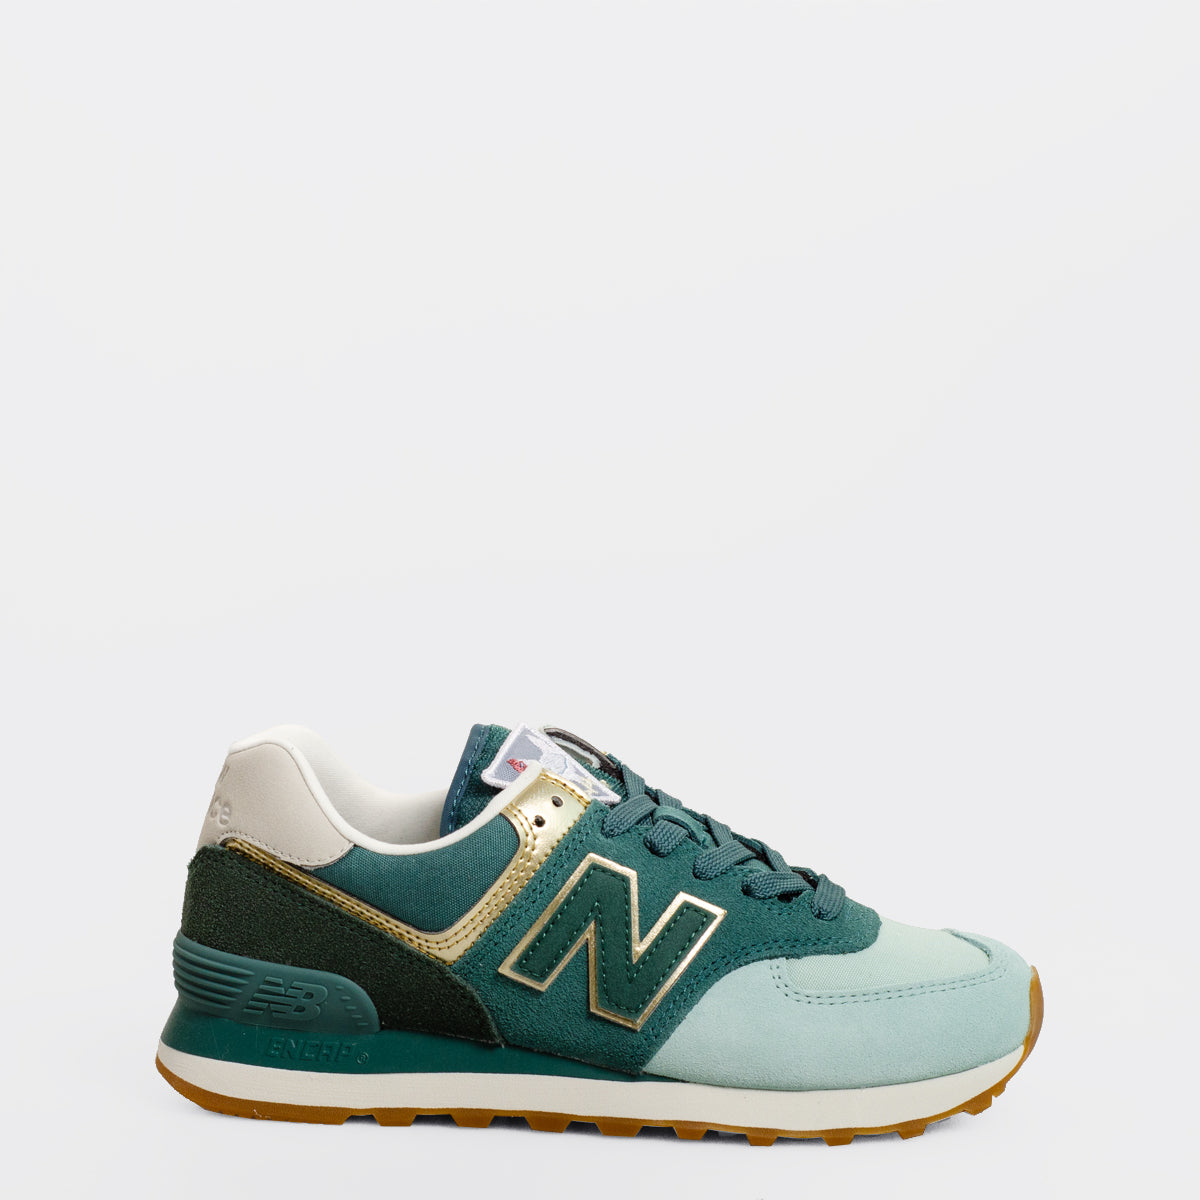 size 40 5b23f 7c8ed New Balance 574 Metallic Patch Agave WL574MLC | Chicago City ...